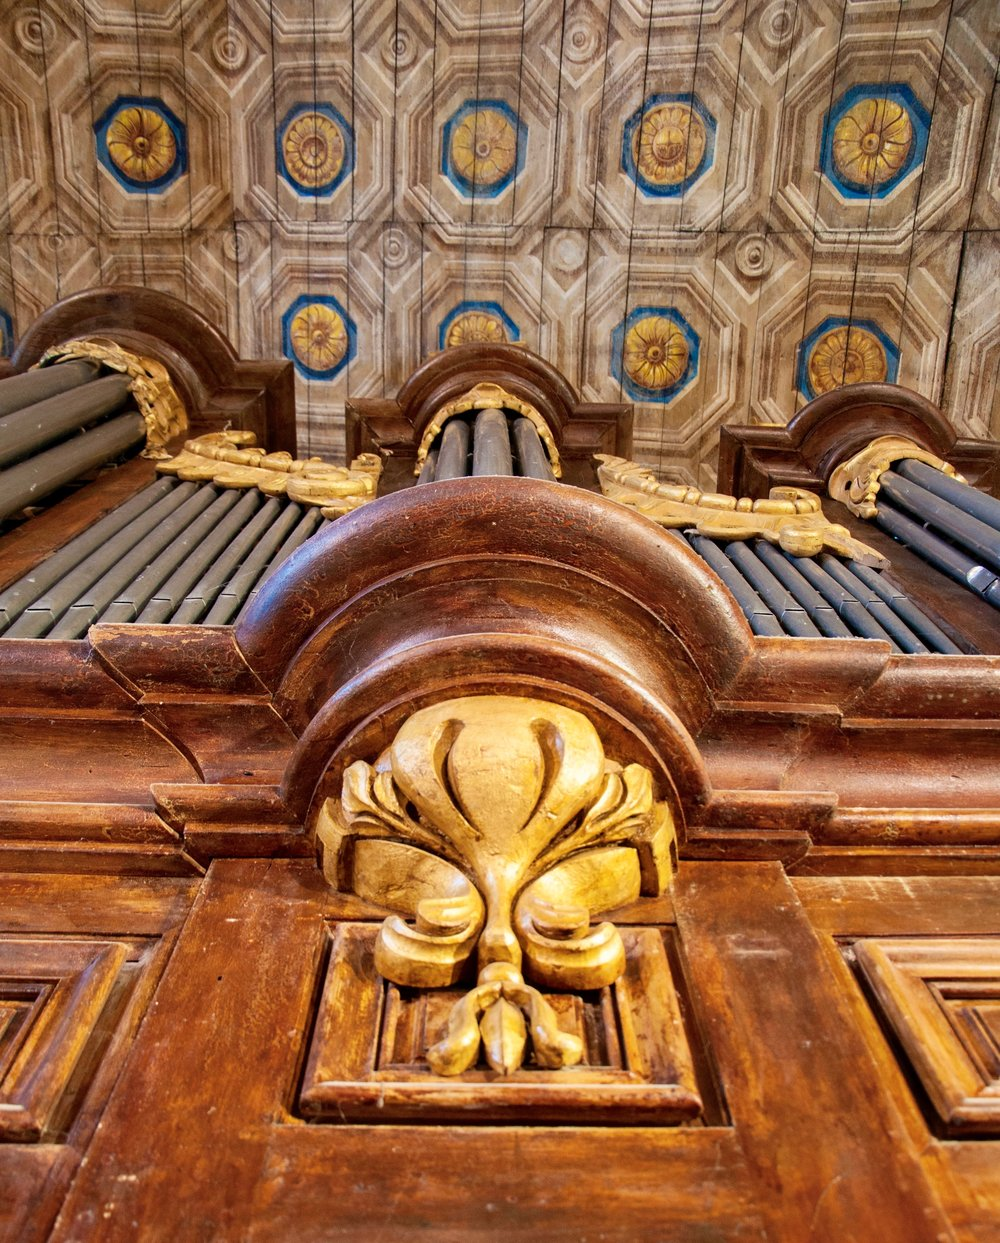 St. Felix church organ built by Gregoire Rabiny